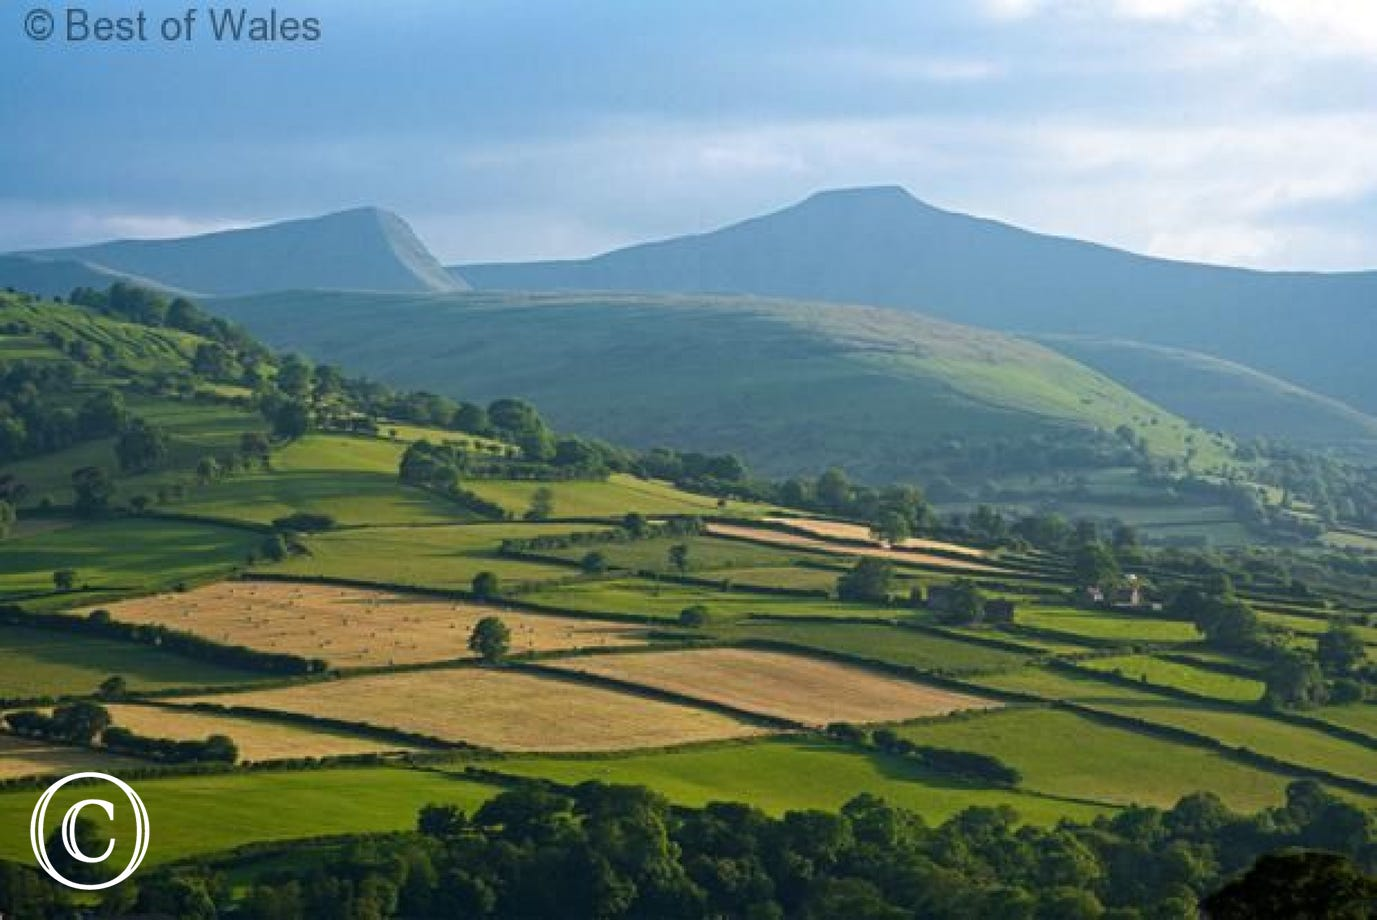 Stunning scenery of the Brecon Beacons